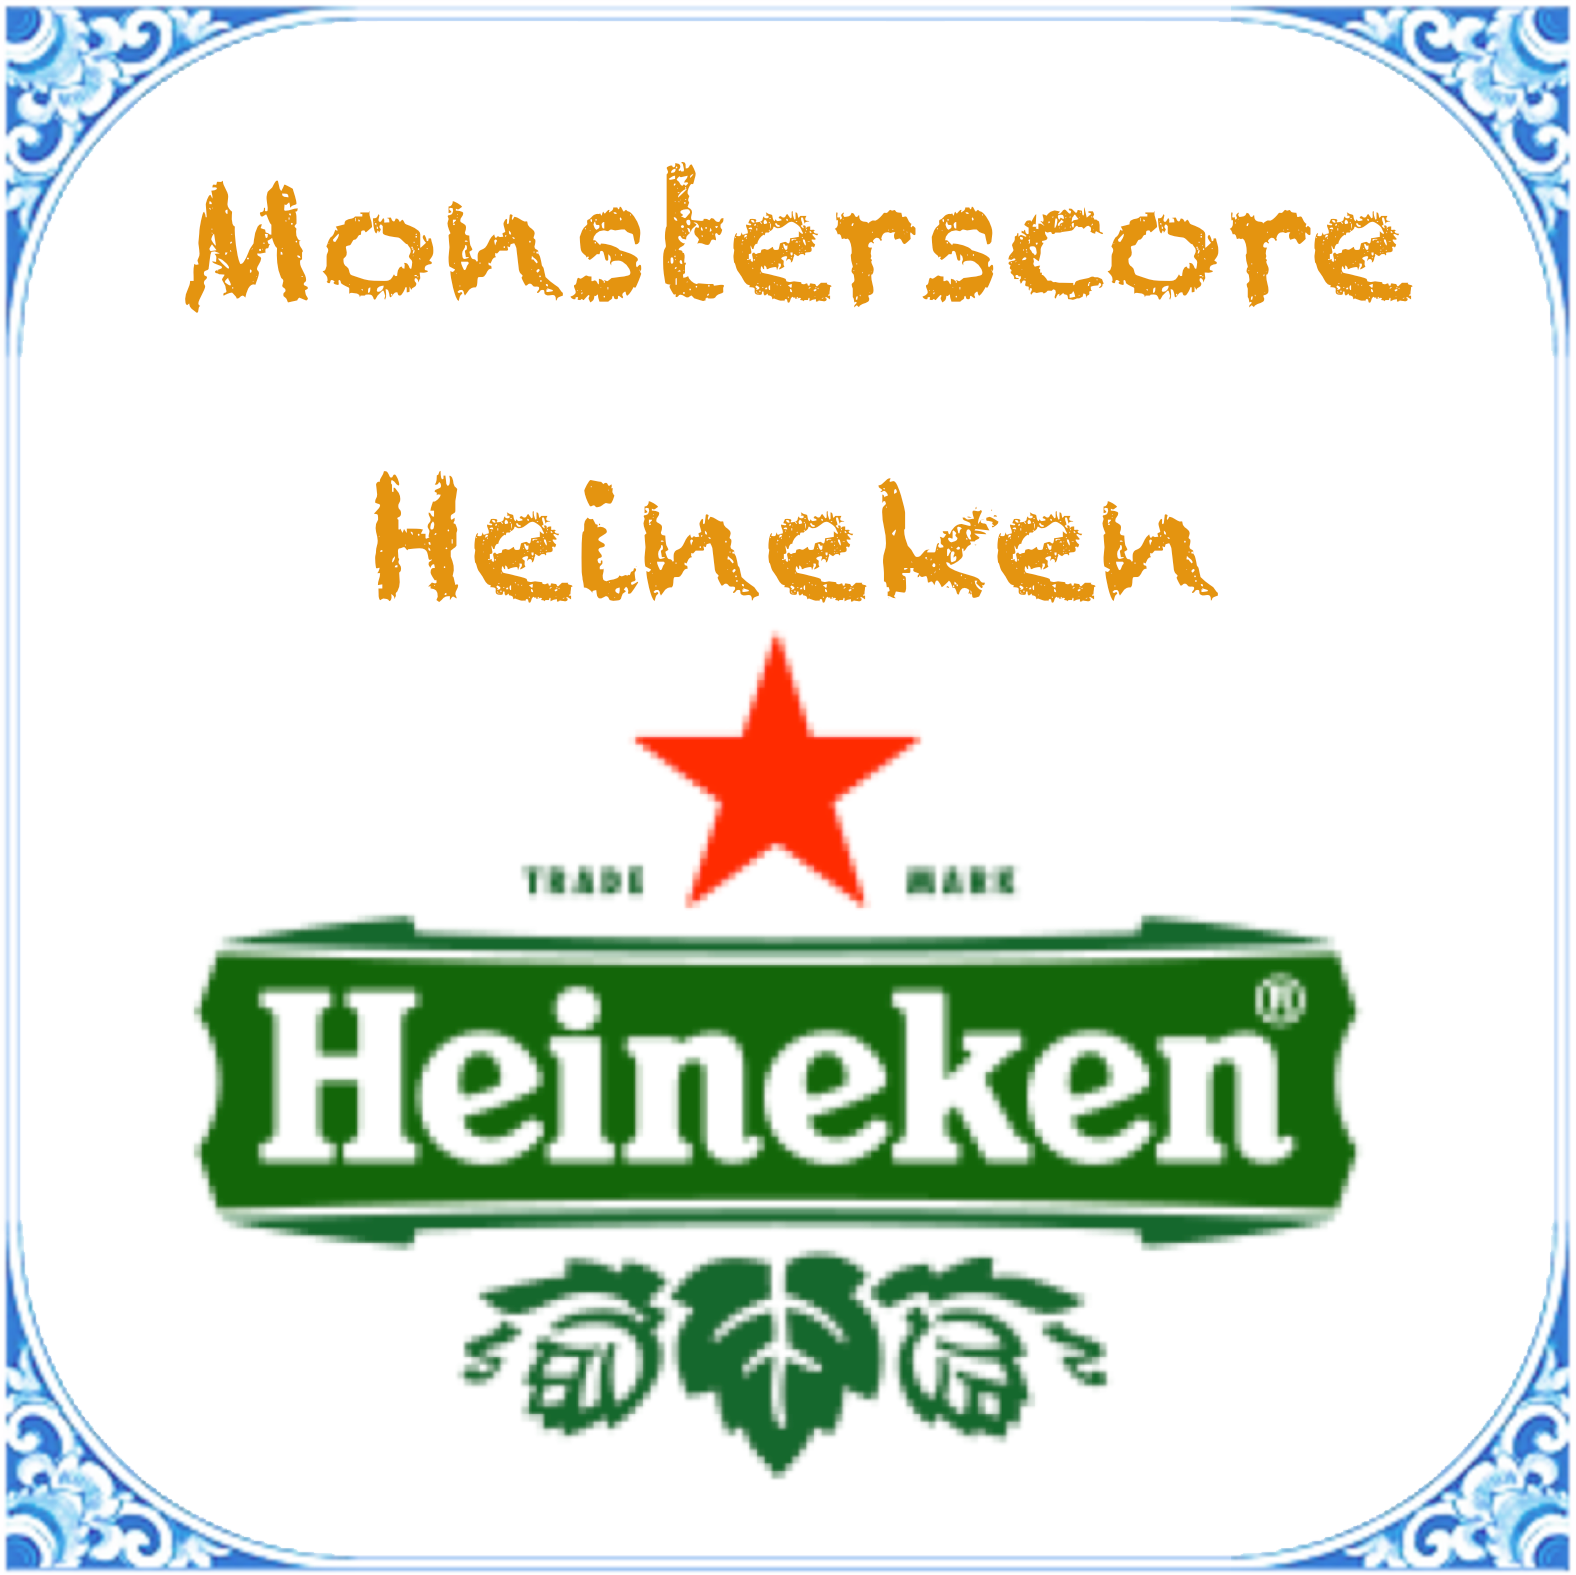 heineken monsterscore